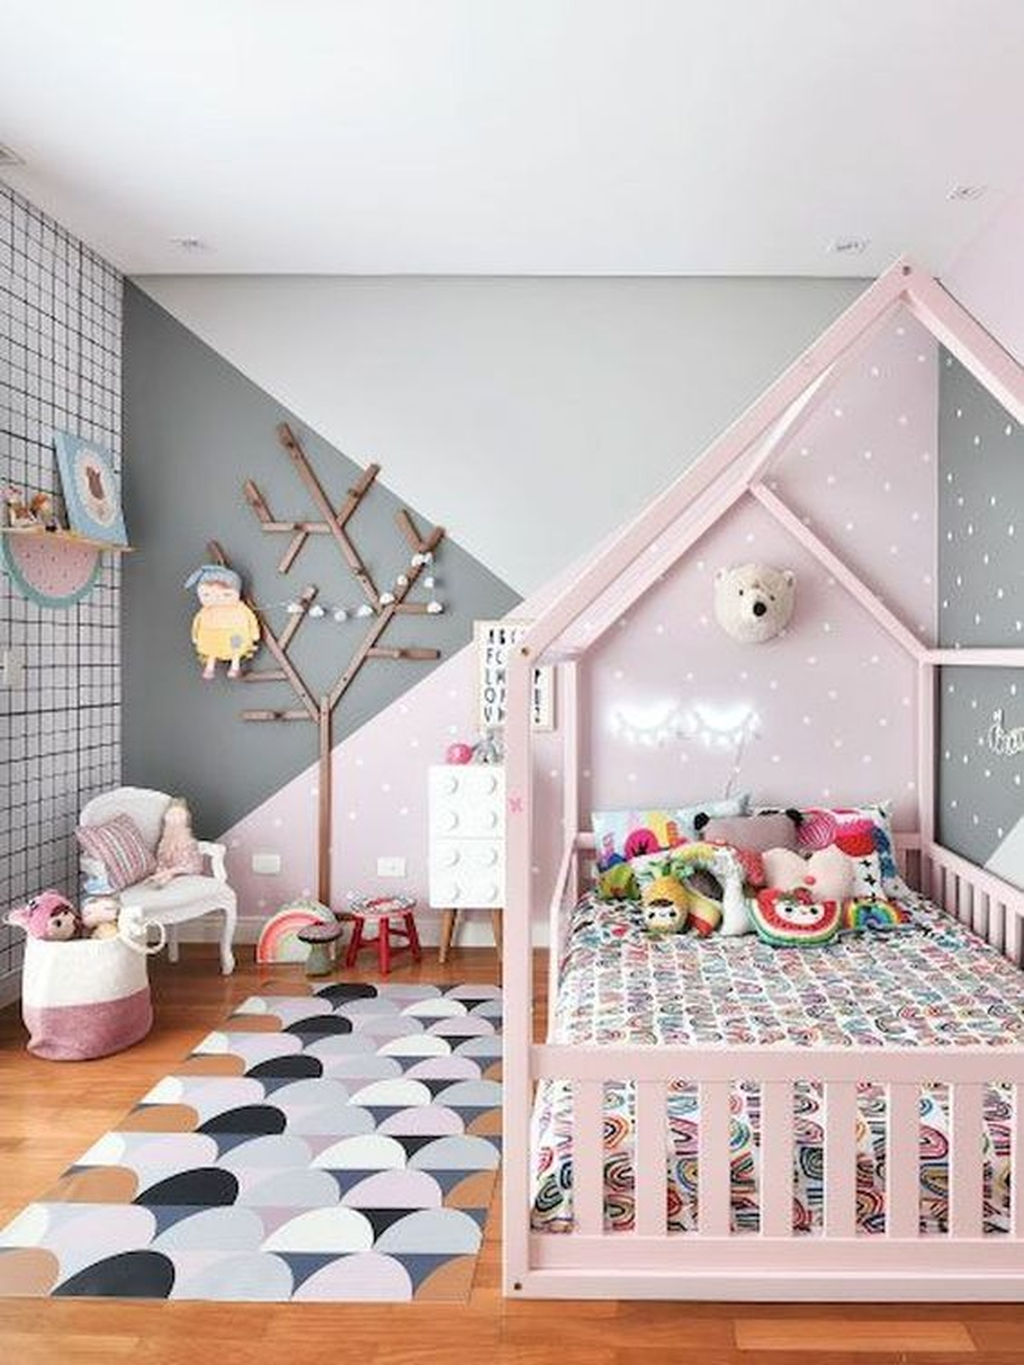 Unusual Kids Bedroom Design Ideas On A Budget25